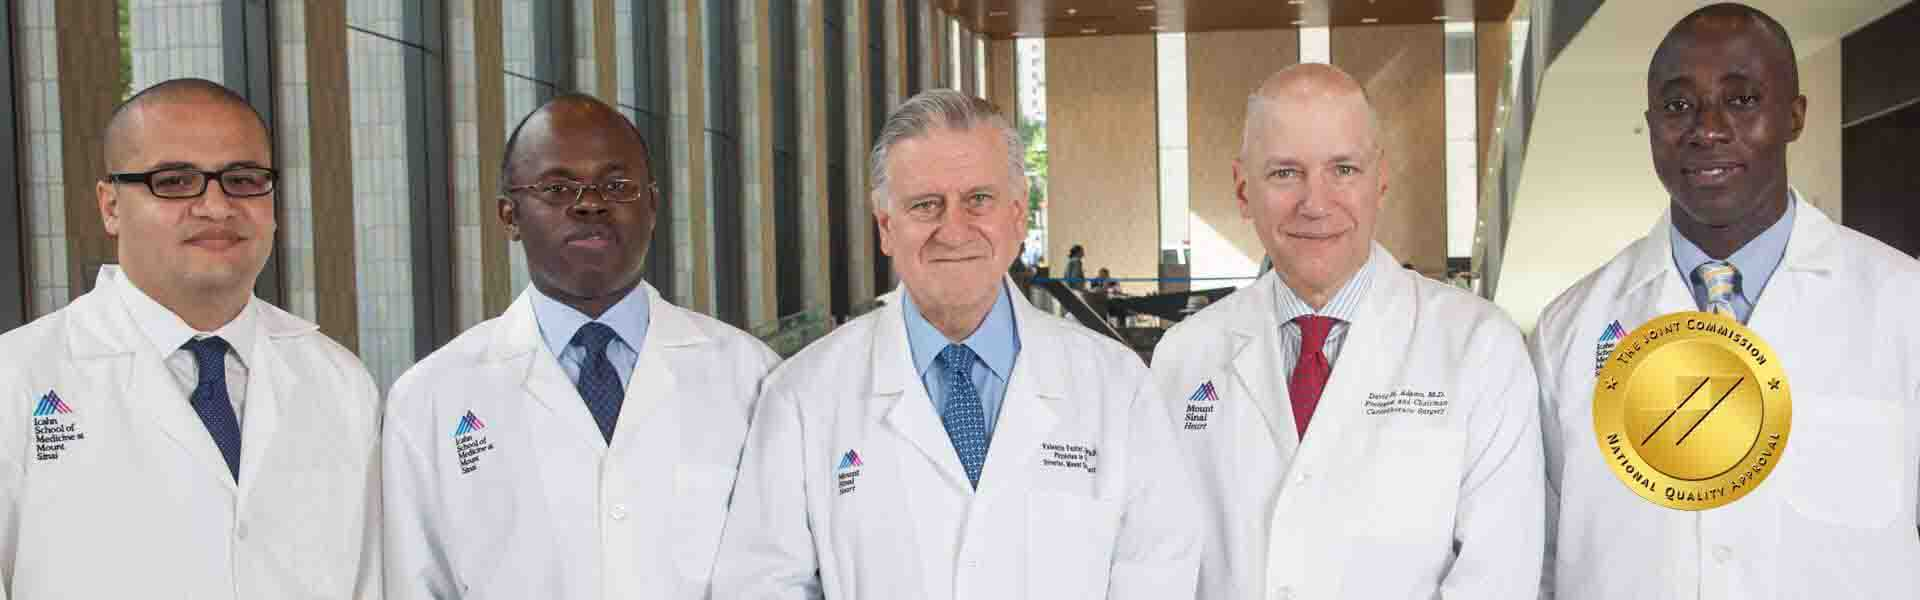 New York Cardiology and Cardiovascular Services | Mount